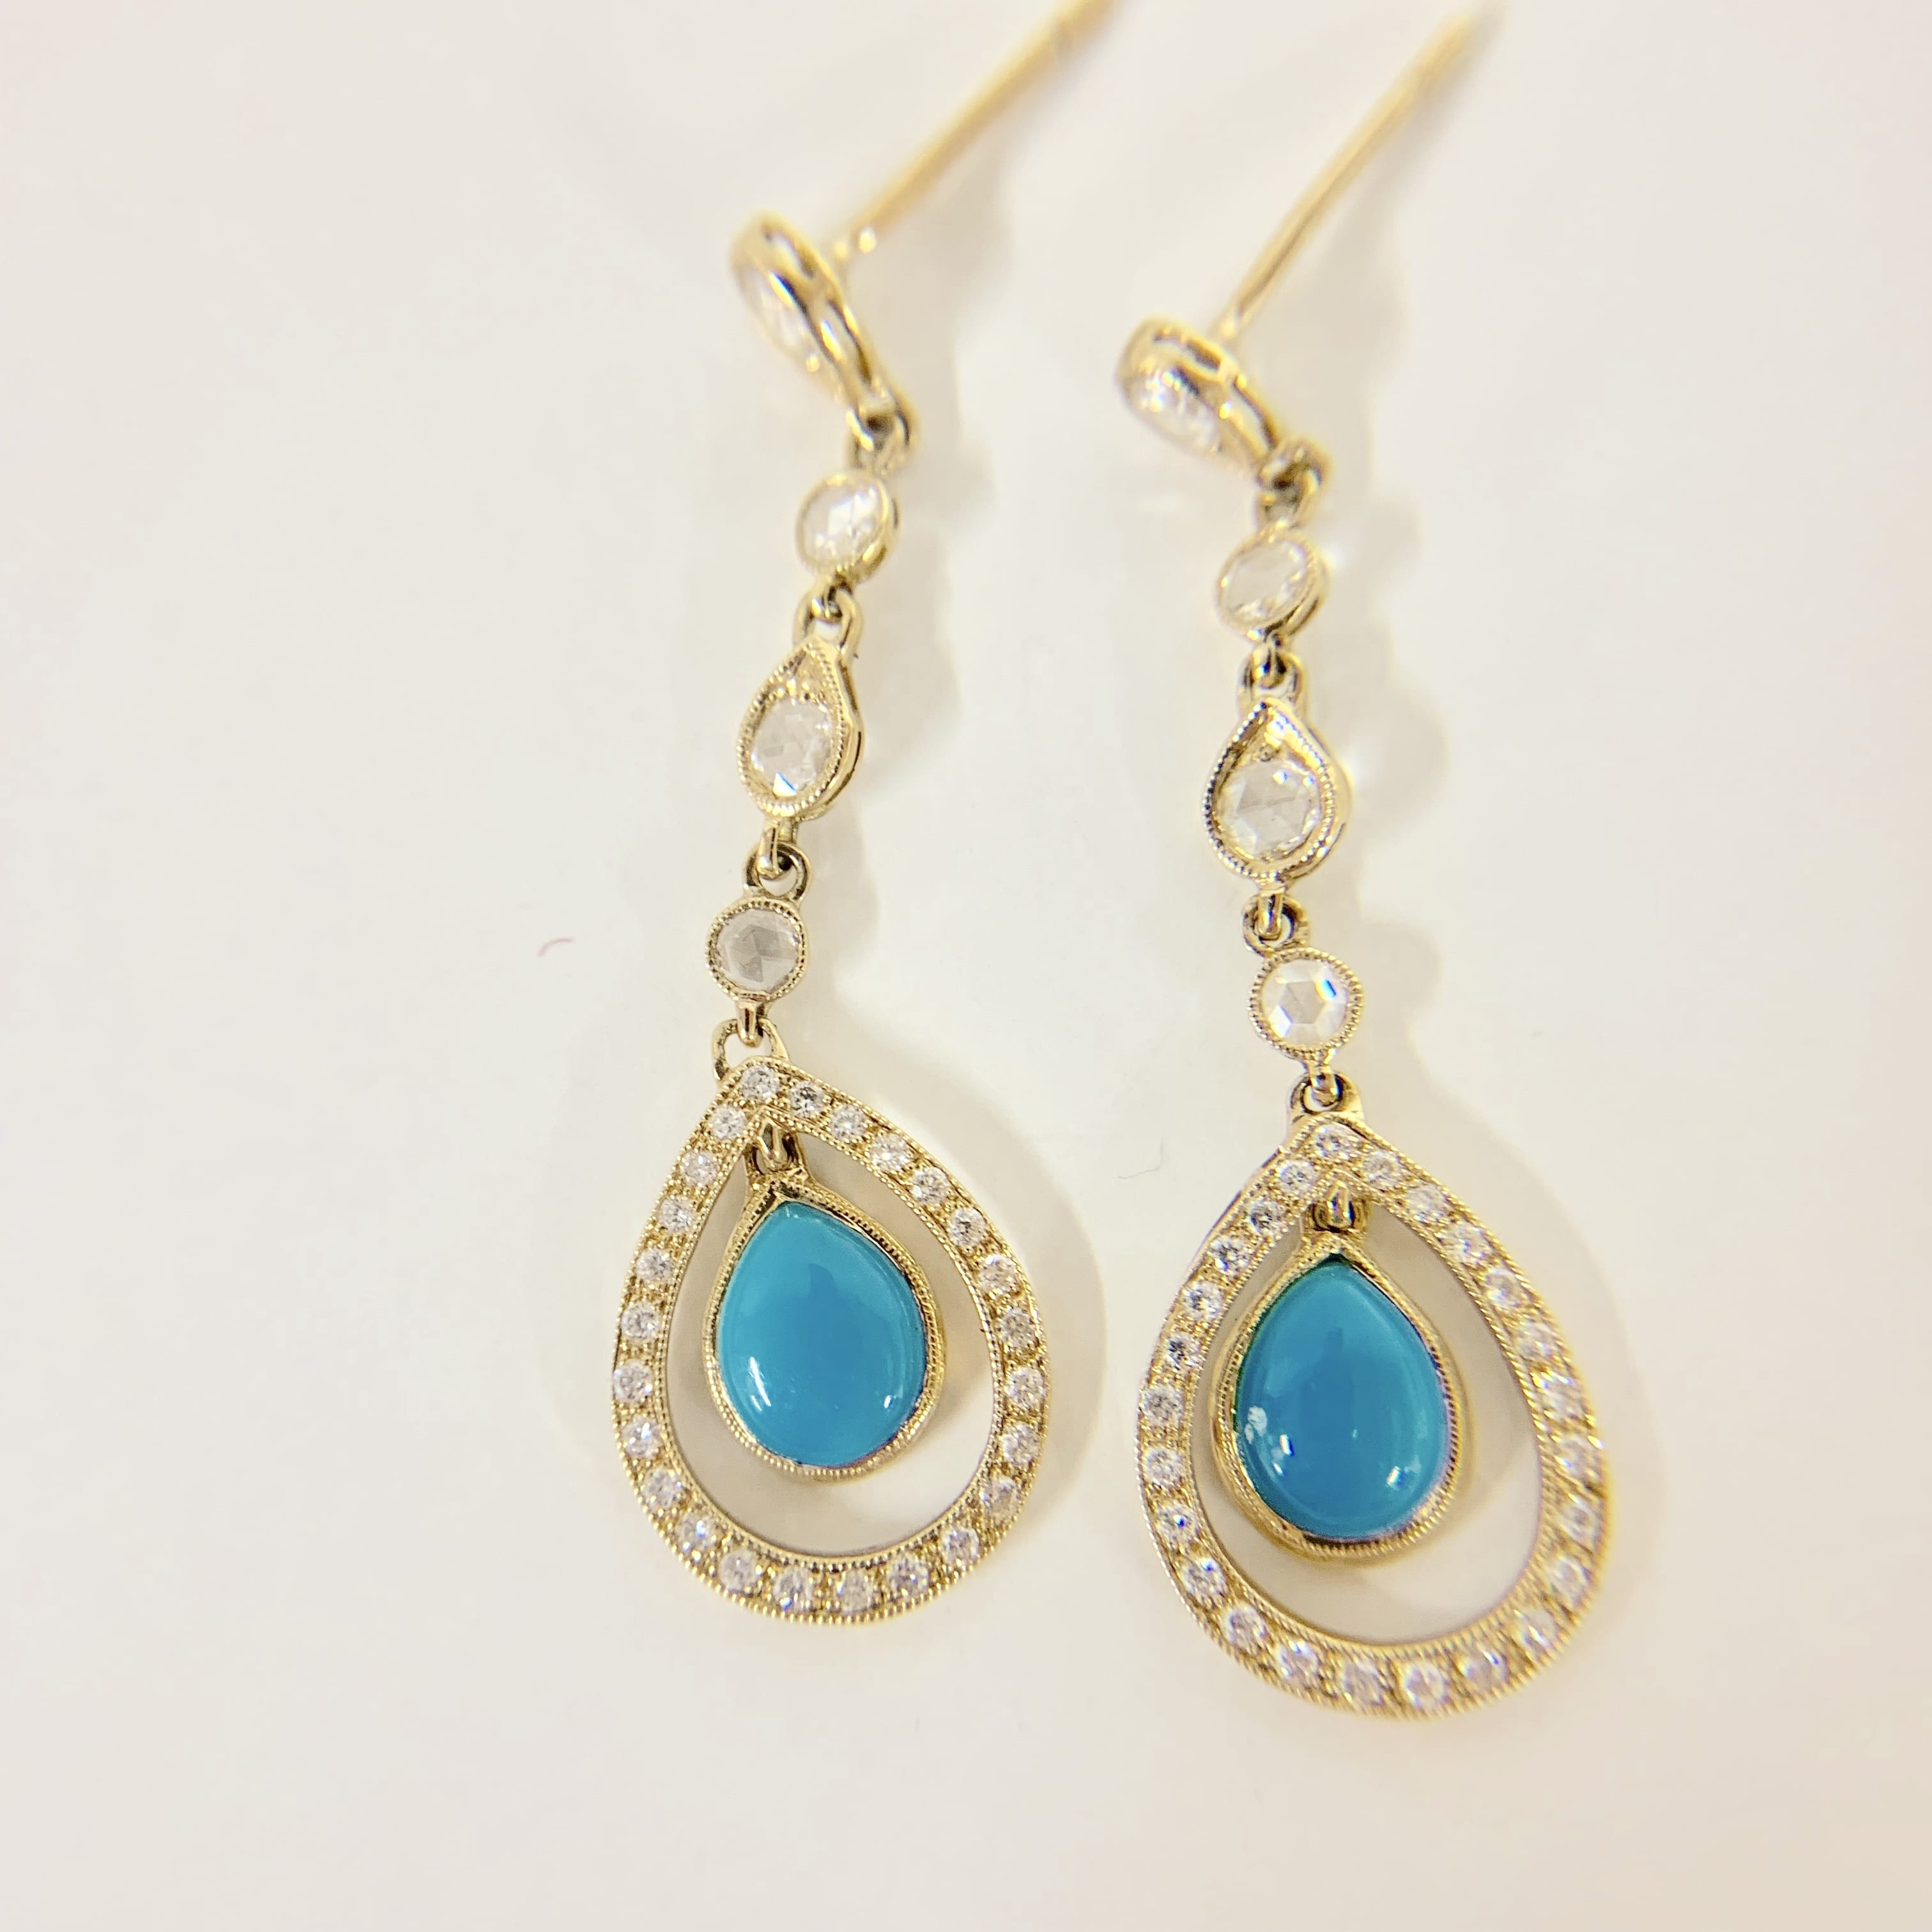 ae9925c11 18K GOLD, DIAMOND AND TURQUOISE EARRINGS – Kemosabe